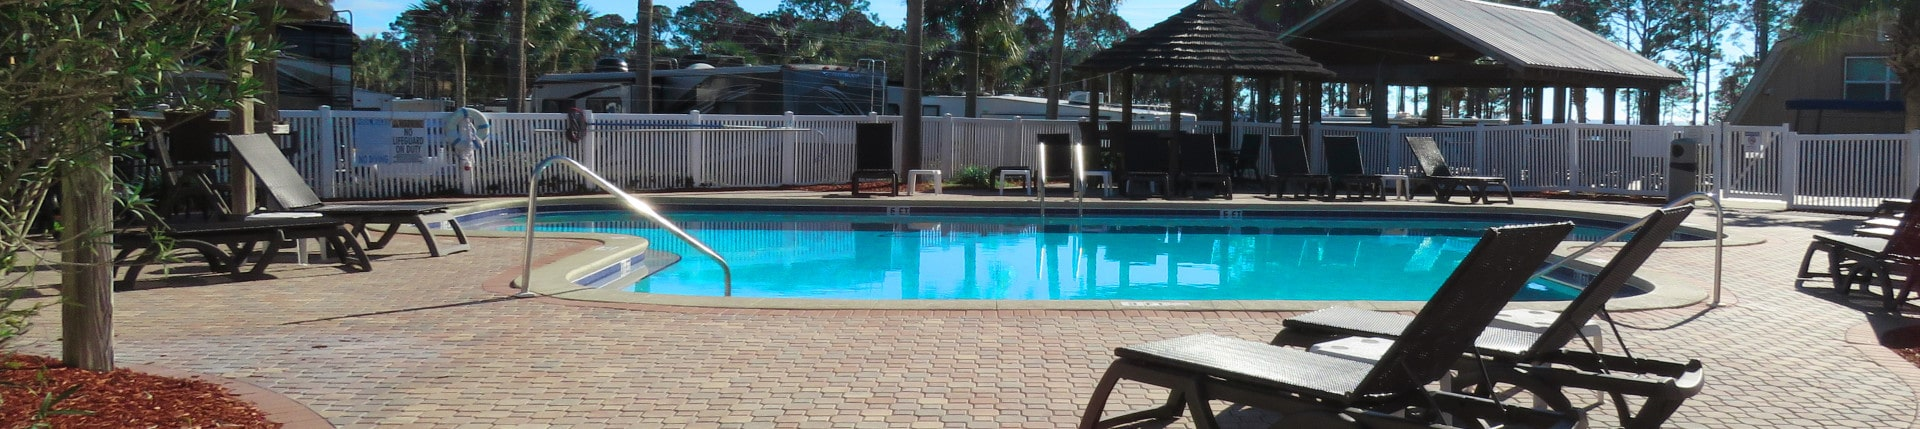 Carrabelle Beach RV Resort Pool